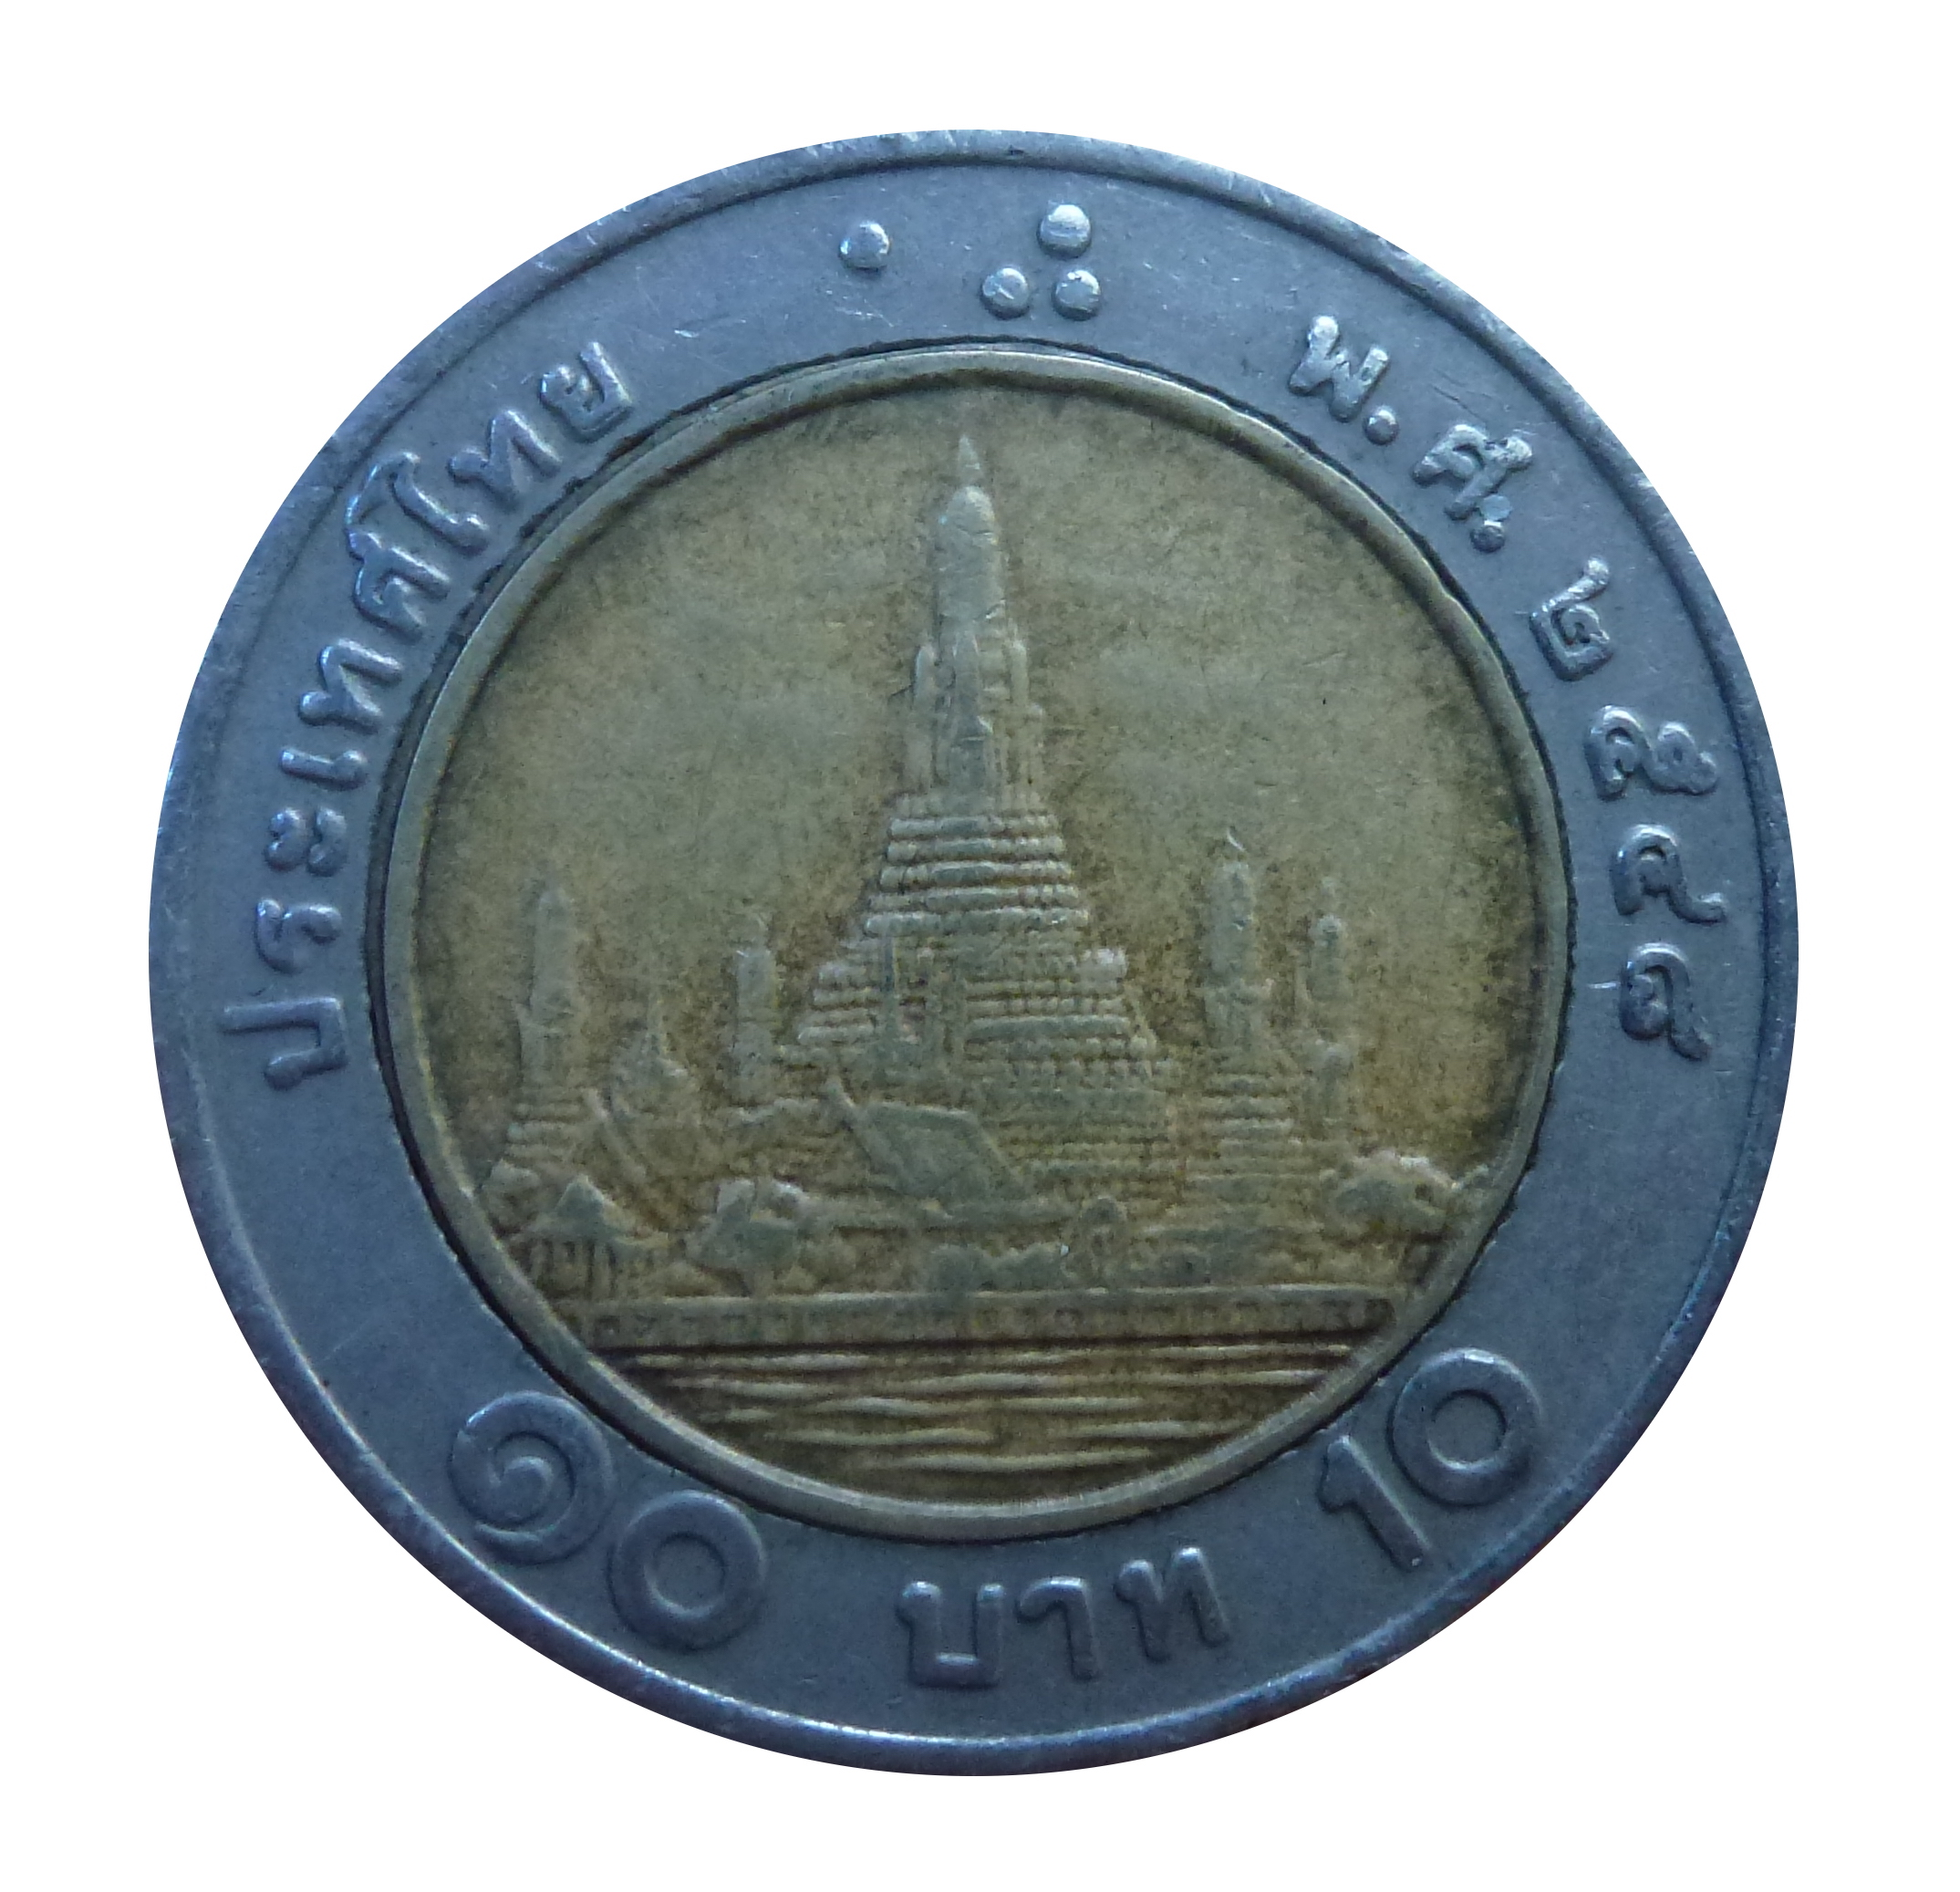 image 500 baht 10 quid in real money well worth it